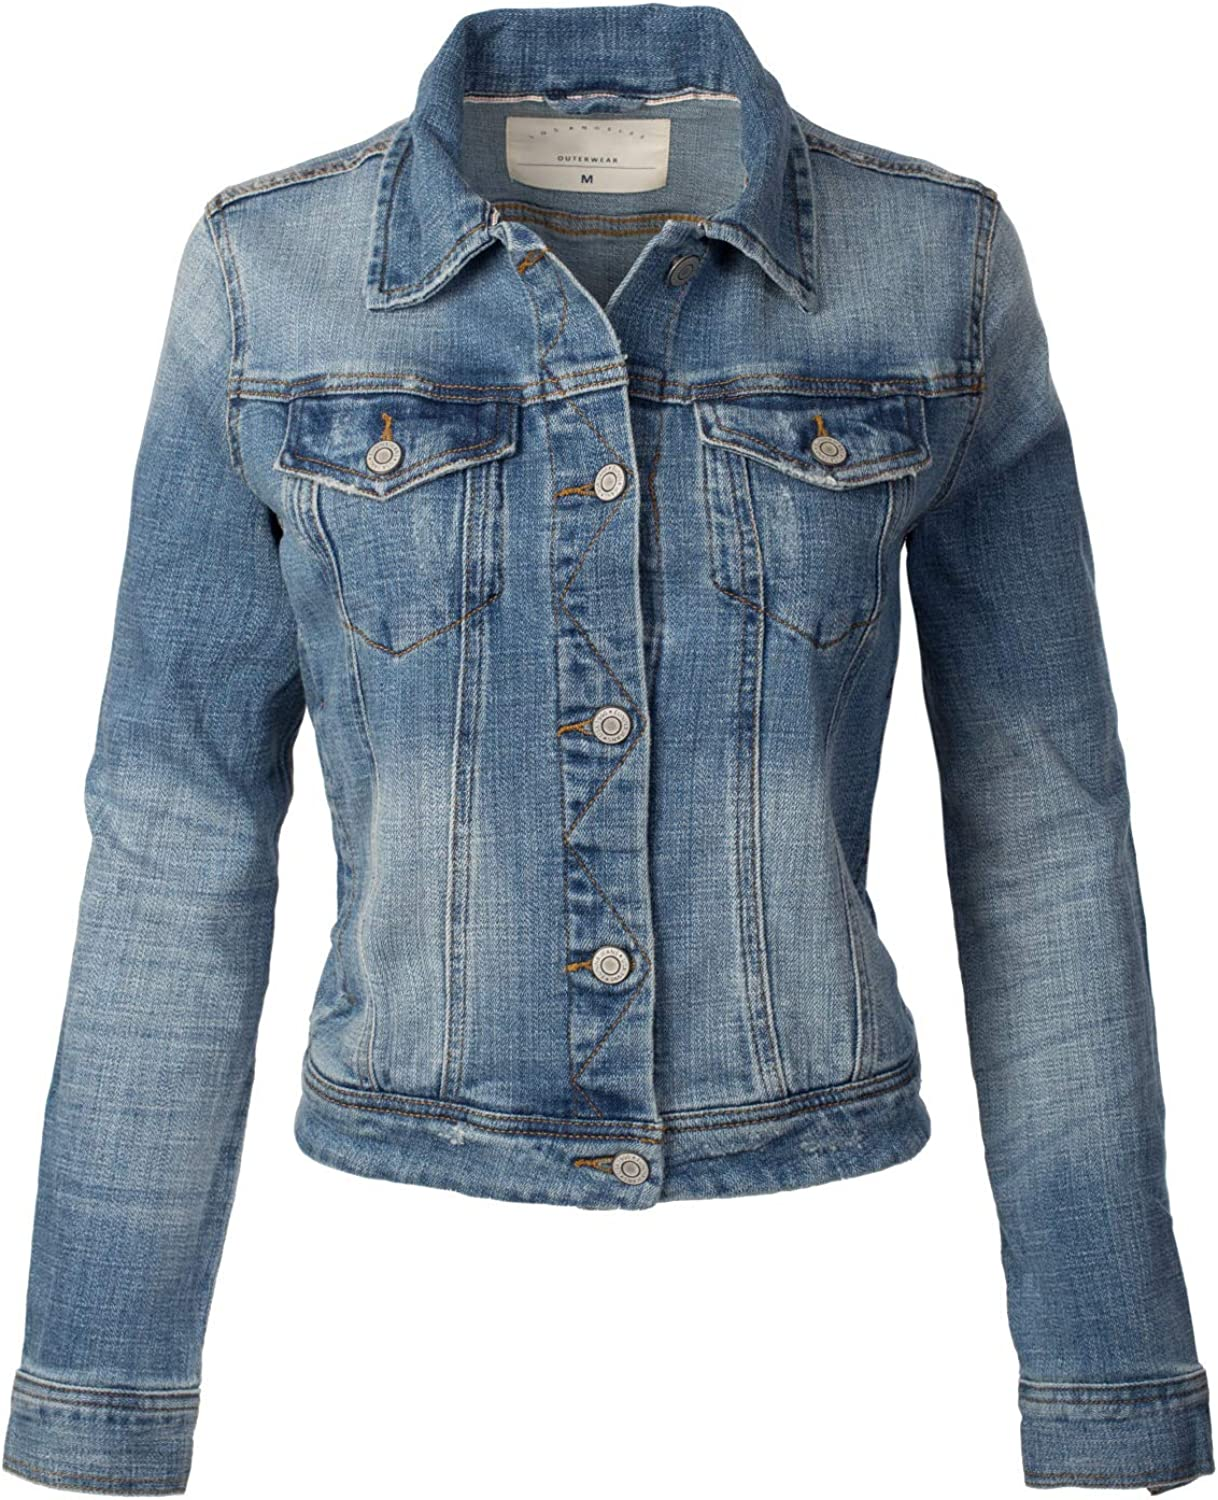 Design by Olivia Women's Classic Casual Vintage Denim Jean Jacket